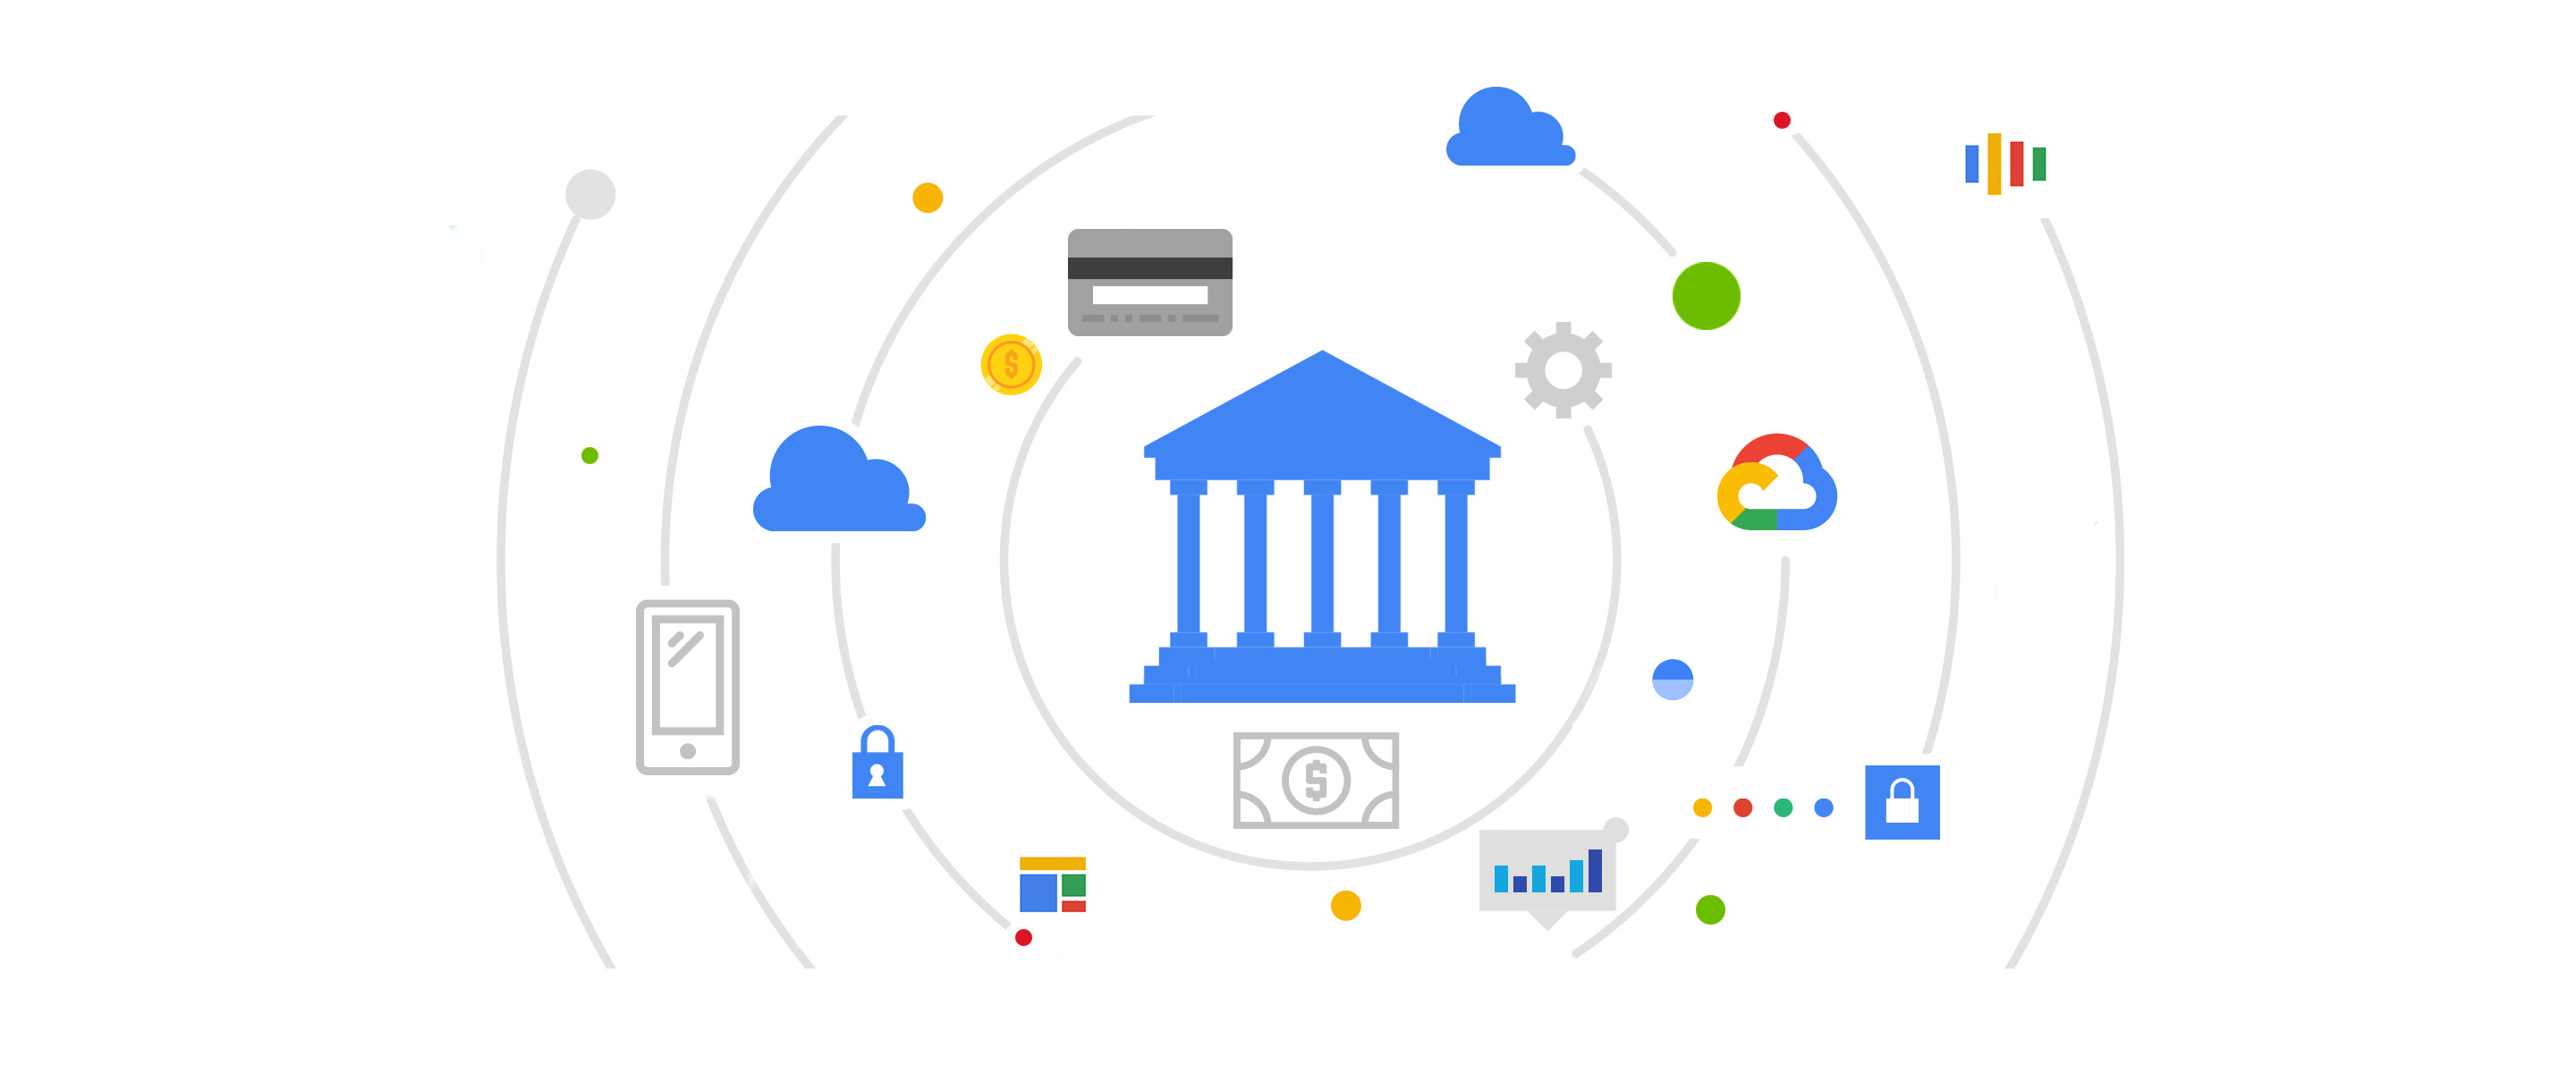 Fintech startup, Branch makes data analytics easy with BigQuery